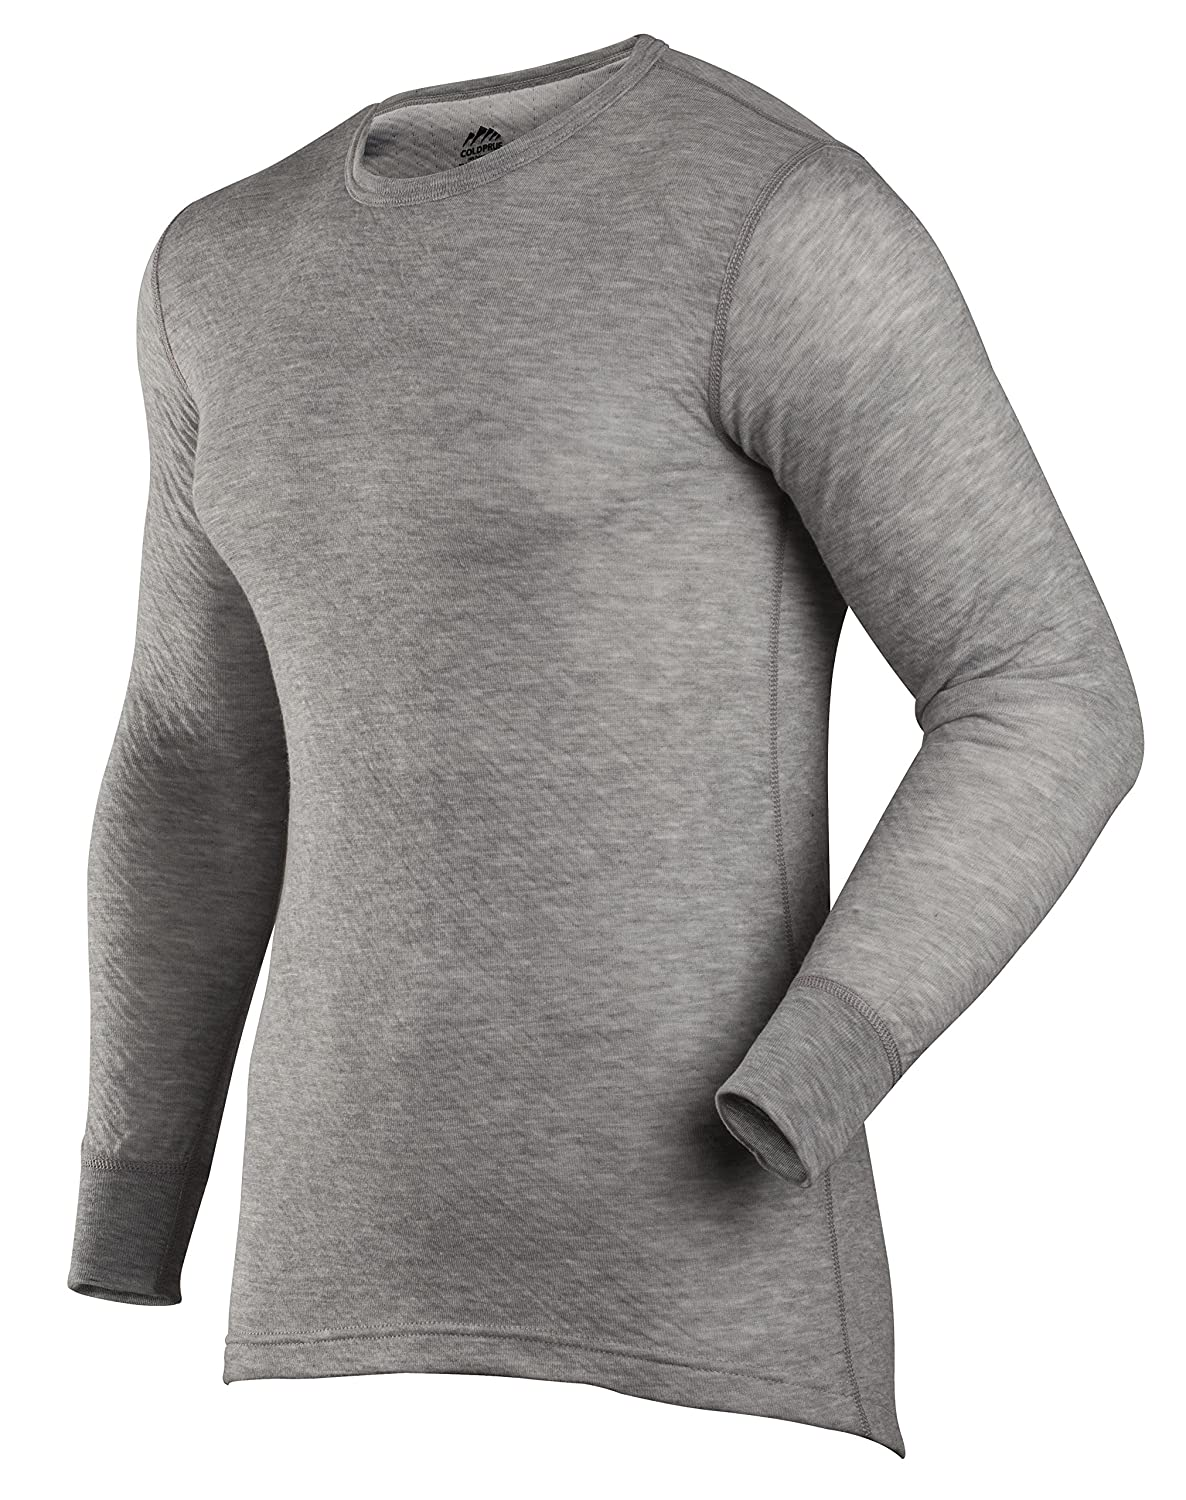 RefrigiWear Men 's Base Layer Top Small グレー B016L6HIAQ